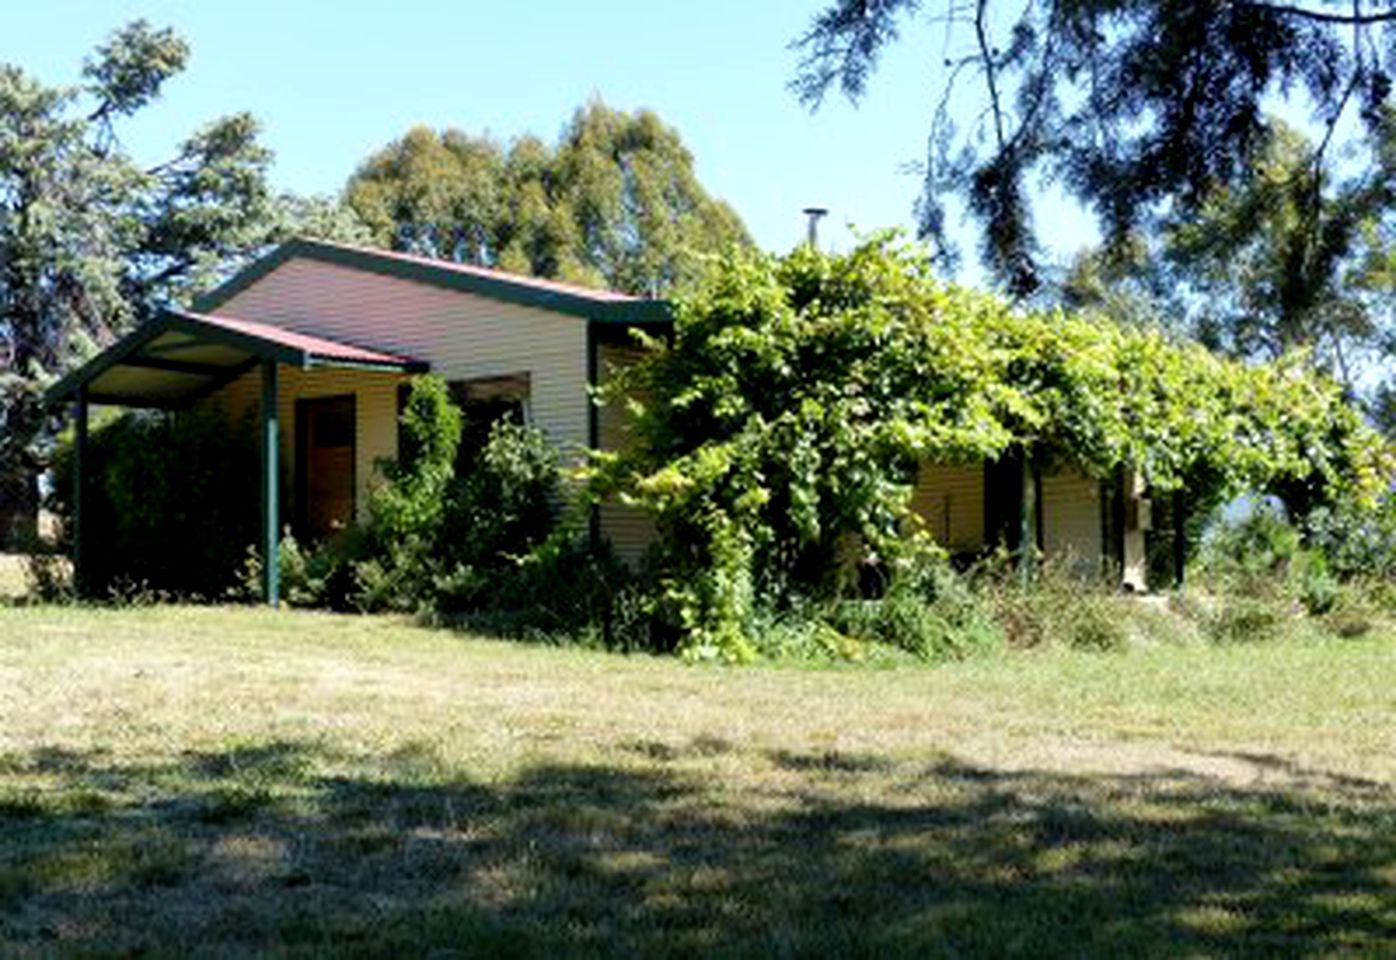 Cottages (Canberra, New South Wales, Australia)